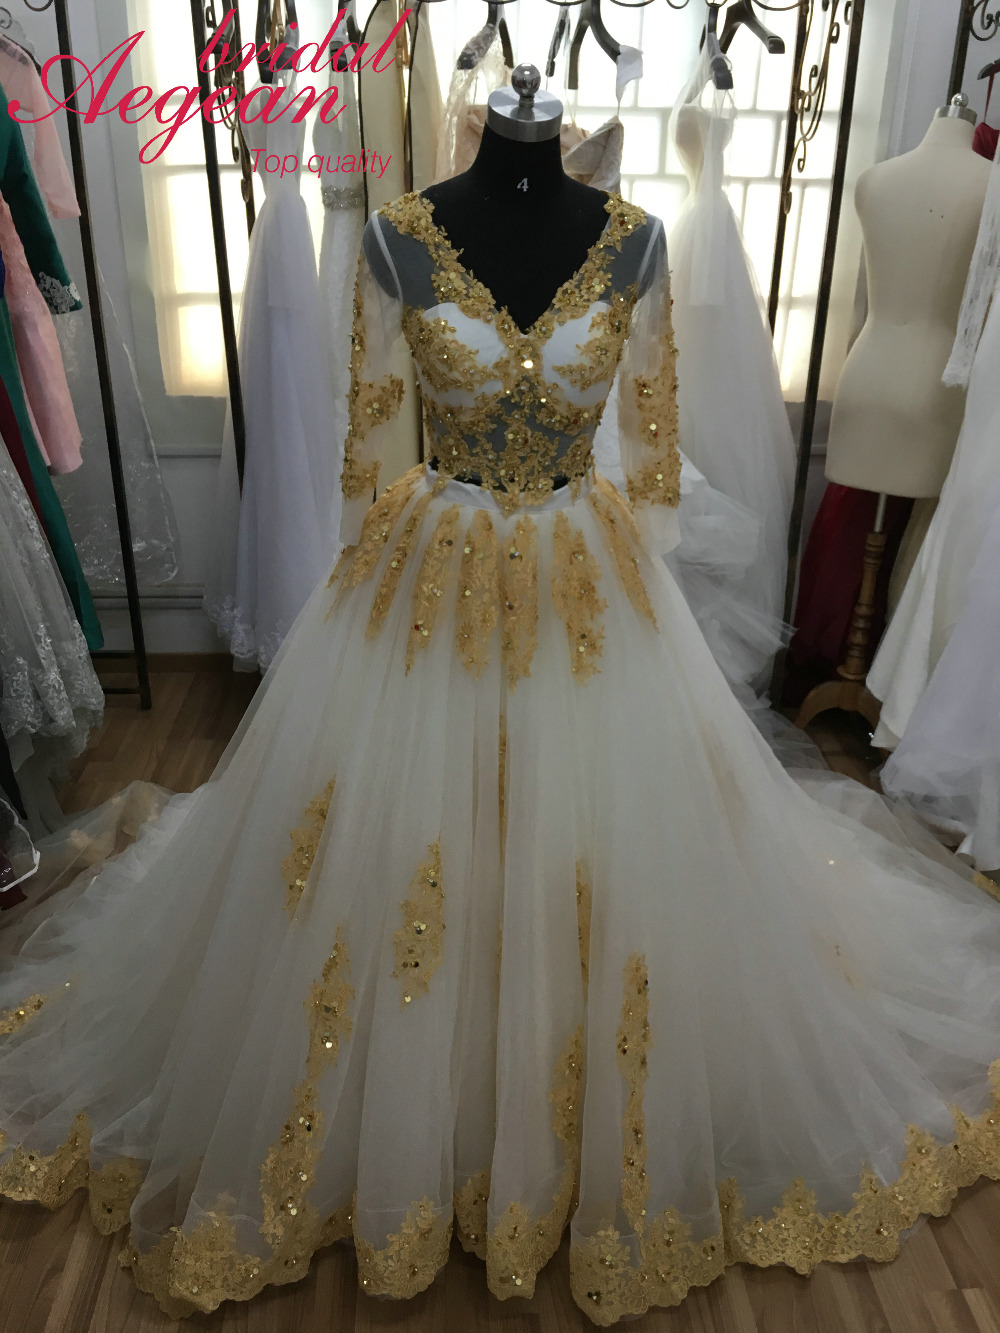 HQ146 Real Sample Two Pieces Wedding Dress Gold and Ivory Bridal Dress Sparkly Beaded Wedding Gown(China (Mainland))